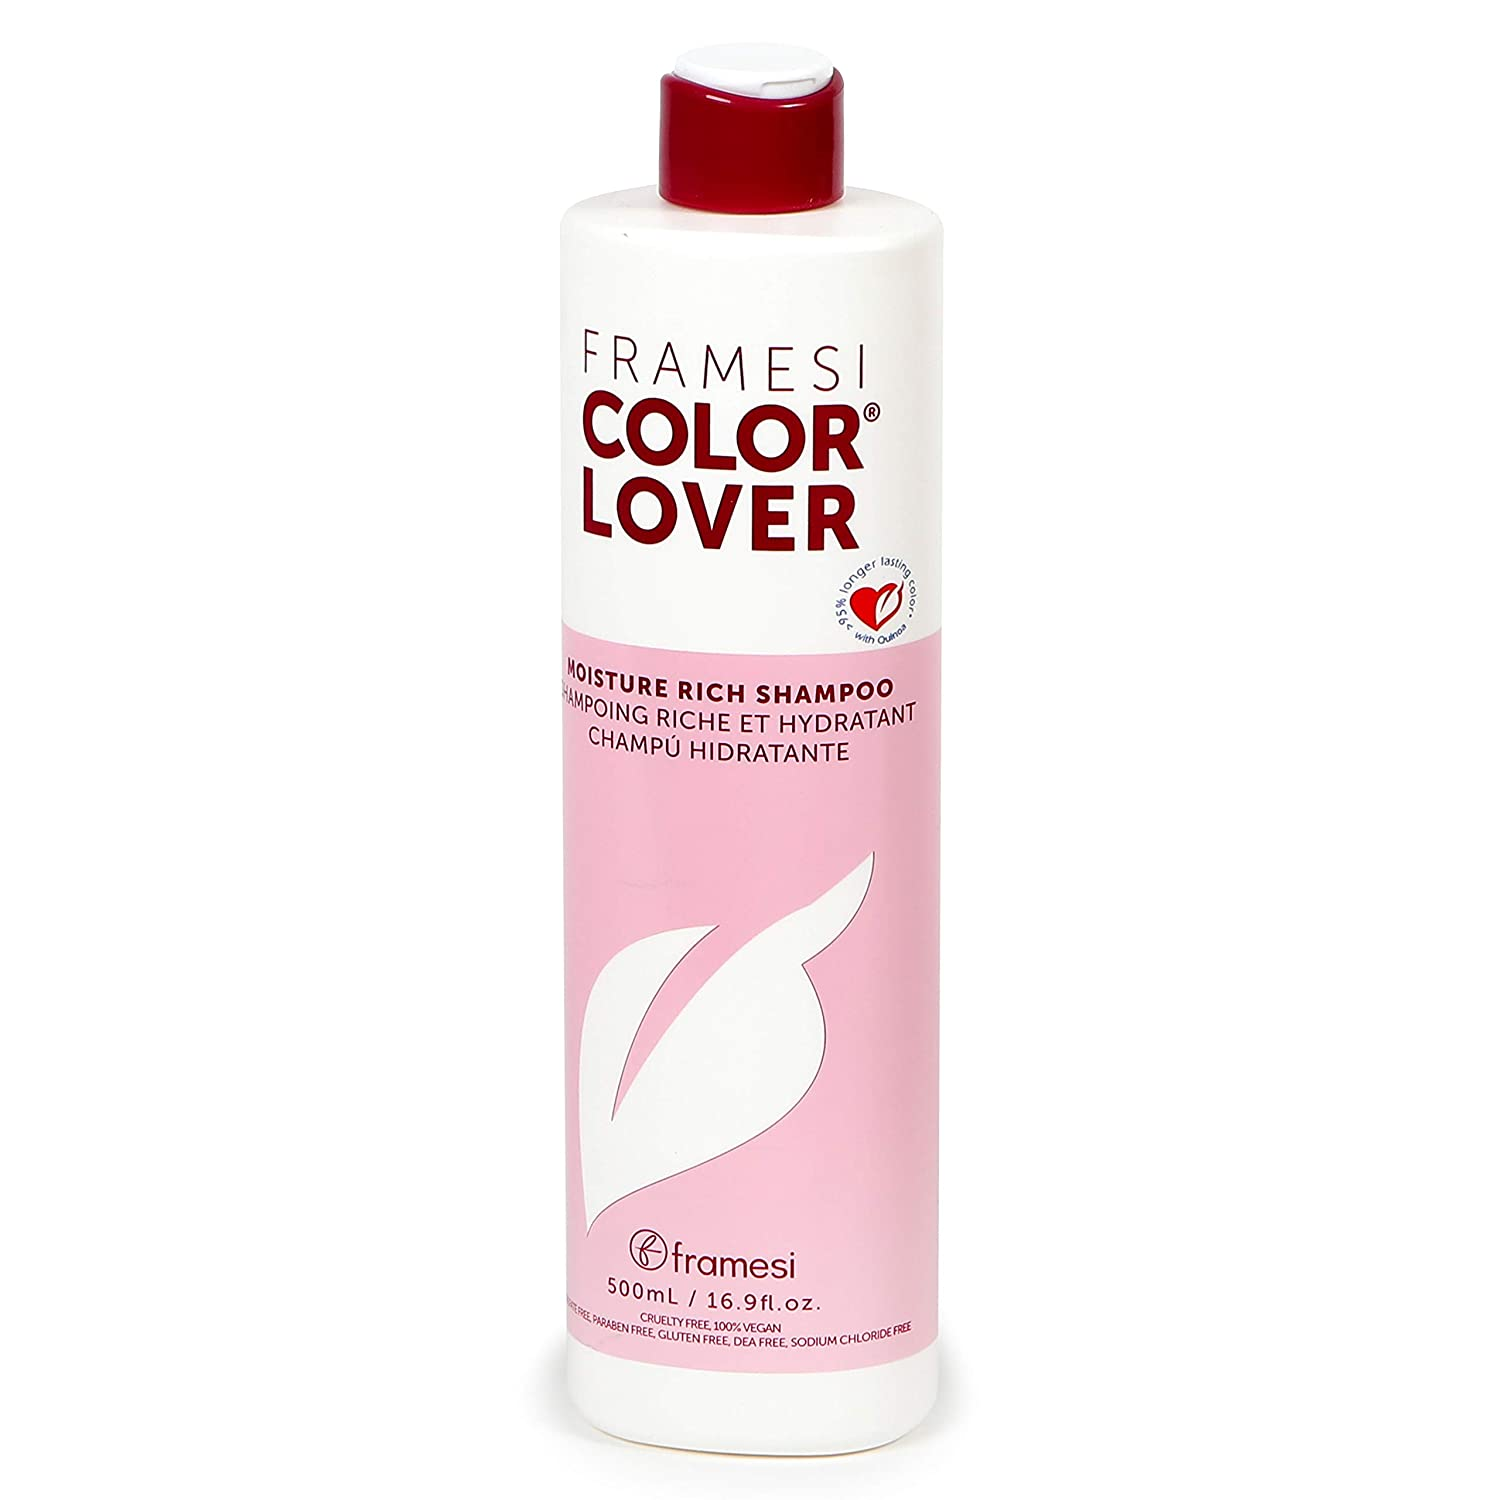 Framesi Color Lover Moisture Sulfate Free Shampoo Rich Special sale item Super popular specialty store